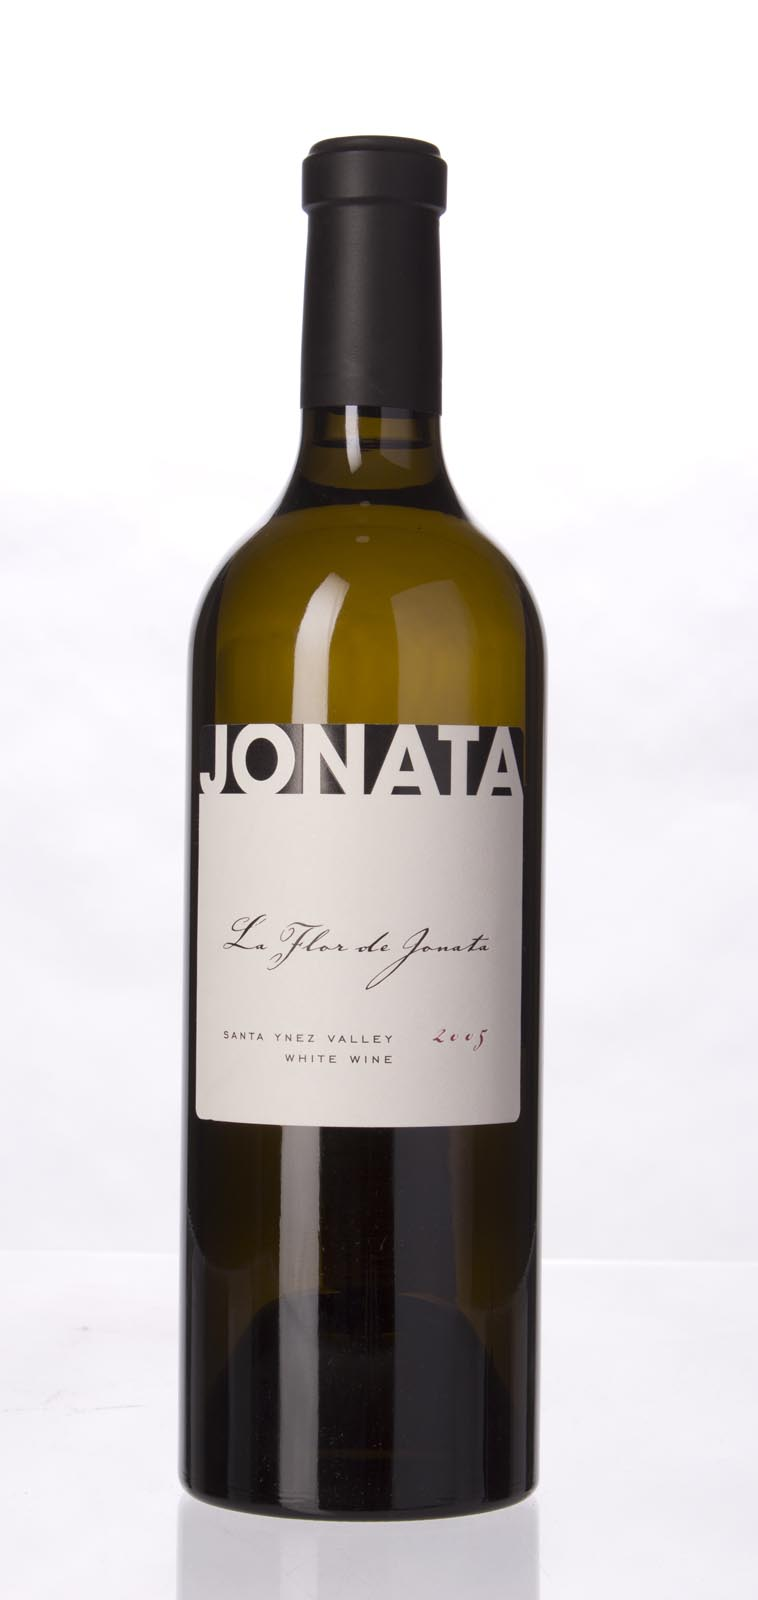 Jonata Sauvignon Blanc La Flor de Jonata 2005, 750mL (WA91) from The BPW - Merchants of rare and fine wines.